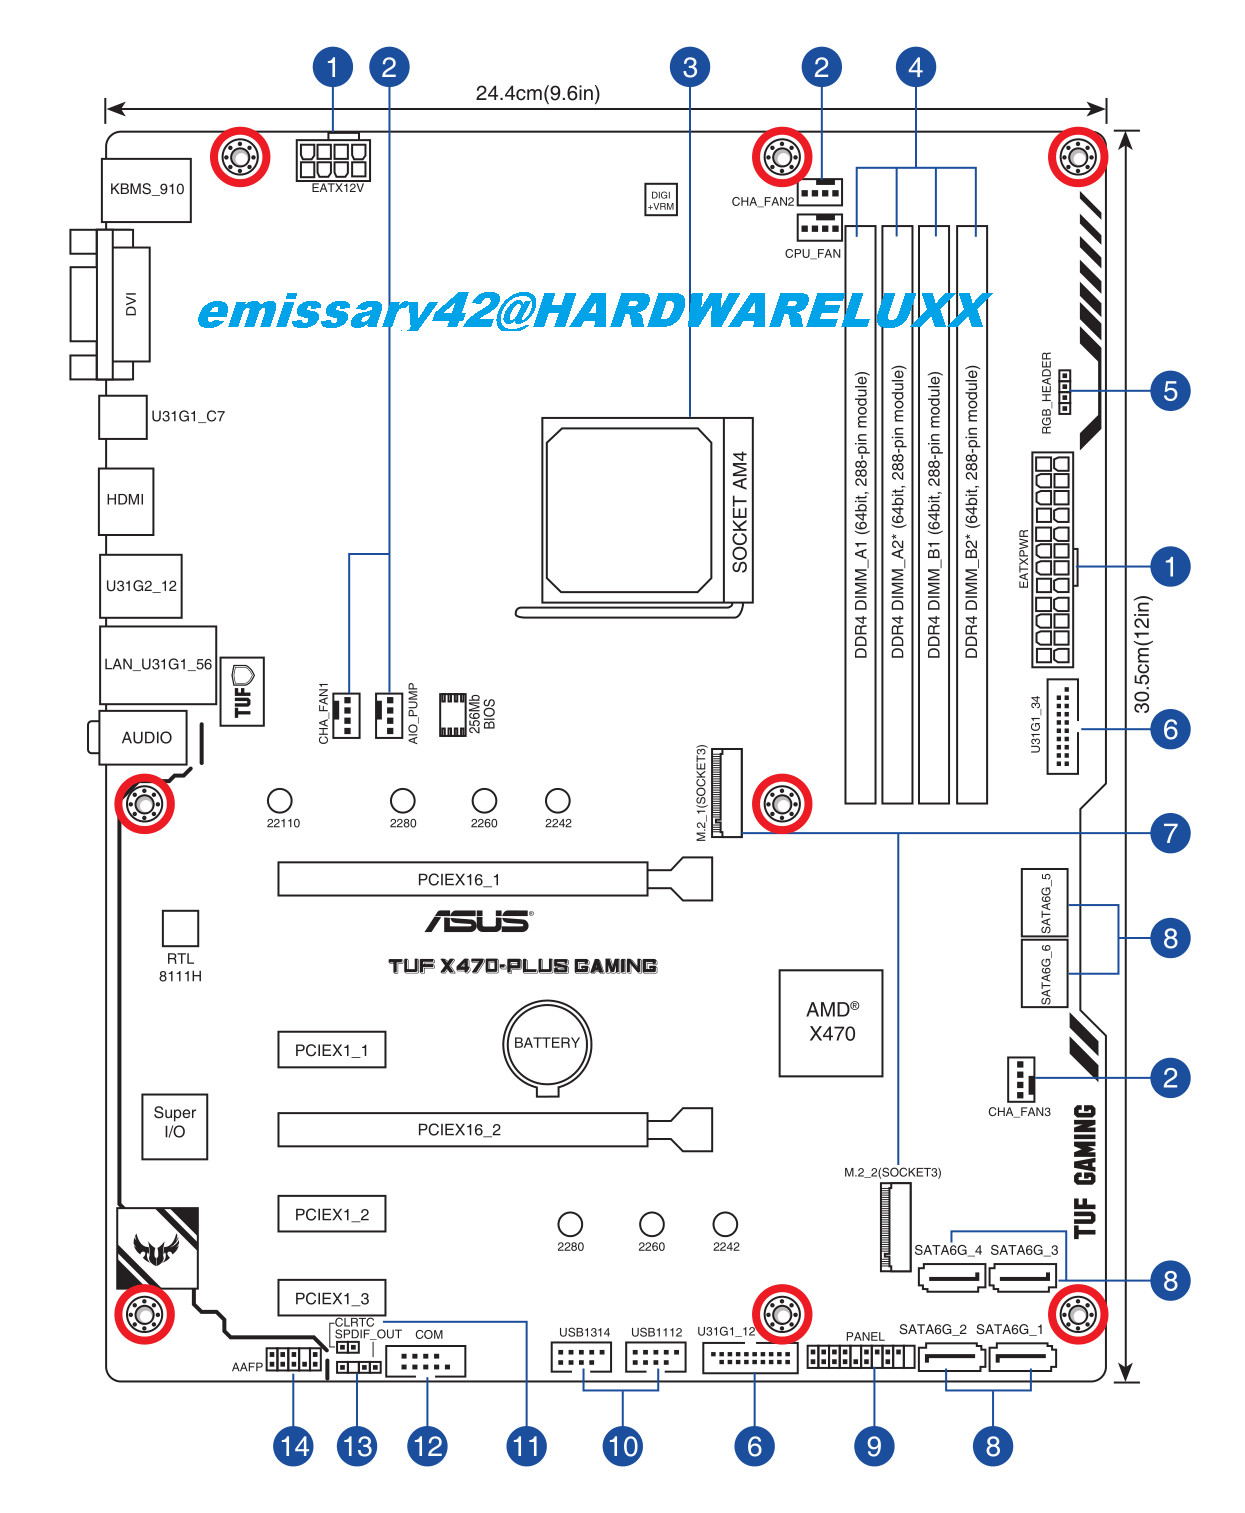 Asus Amd X470 Motherboard Layout Drawings And Specs Sheets Leaked